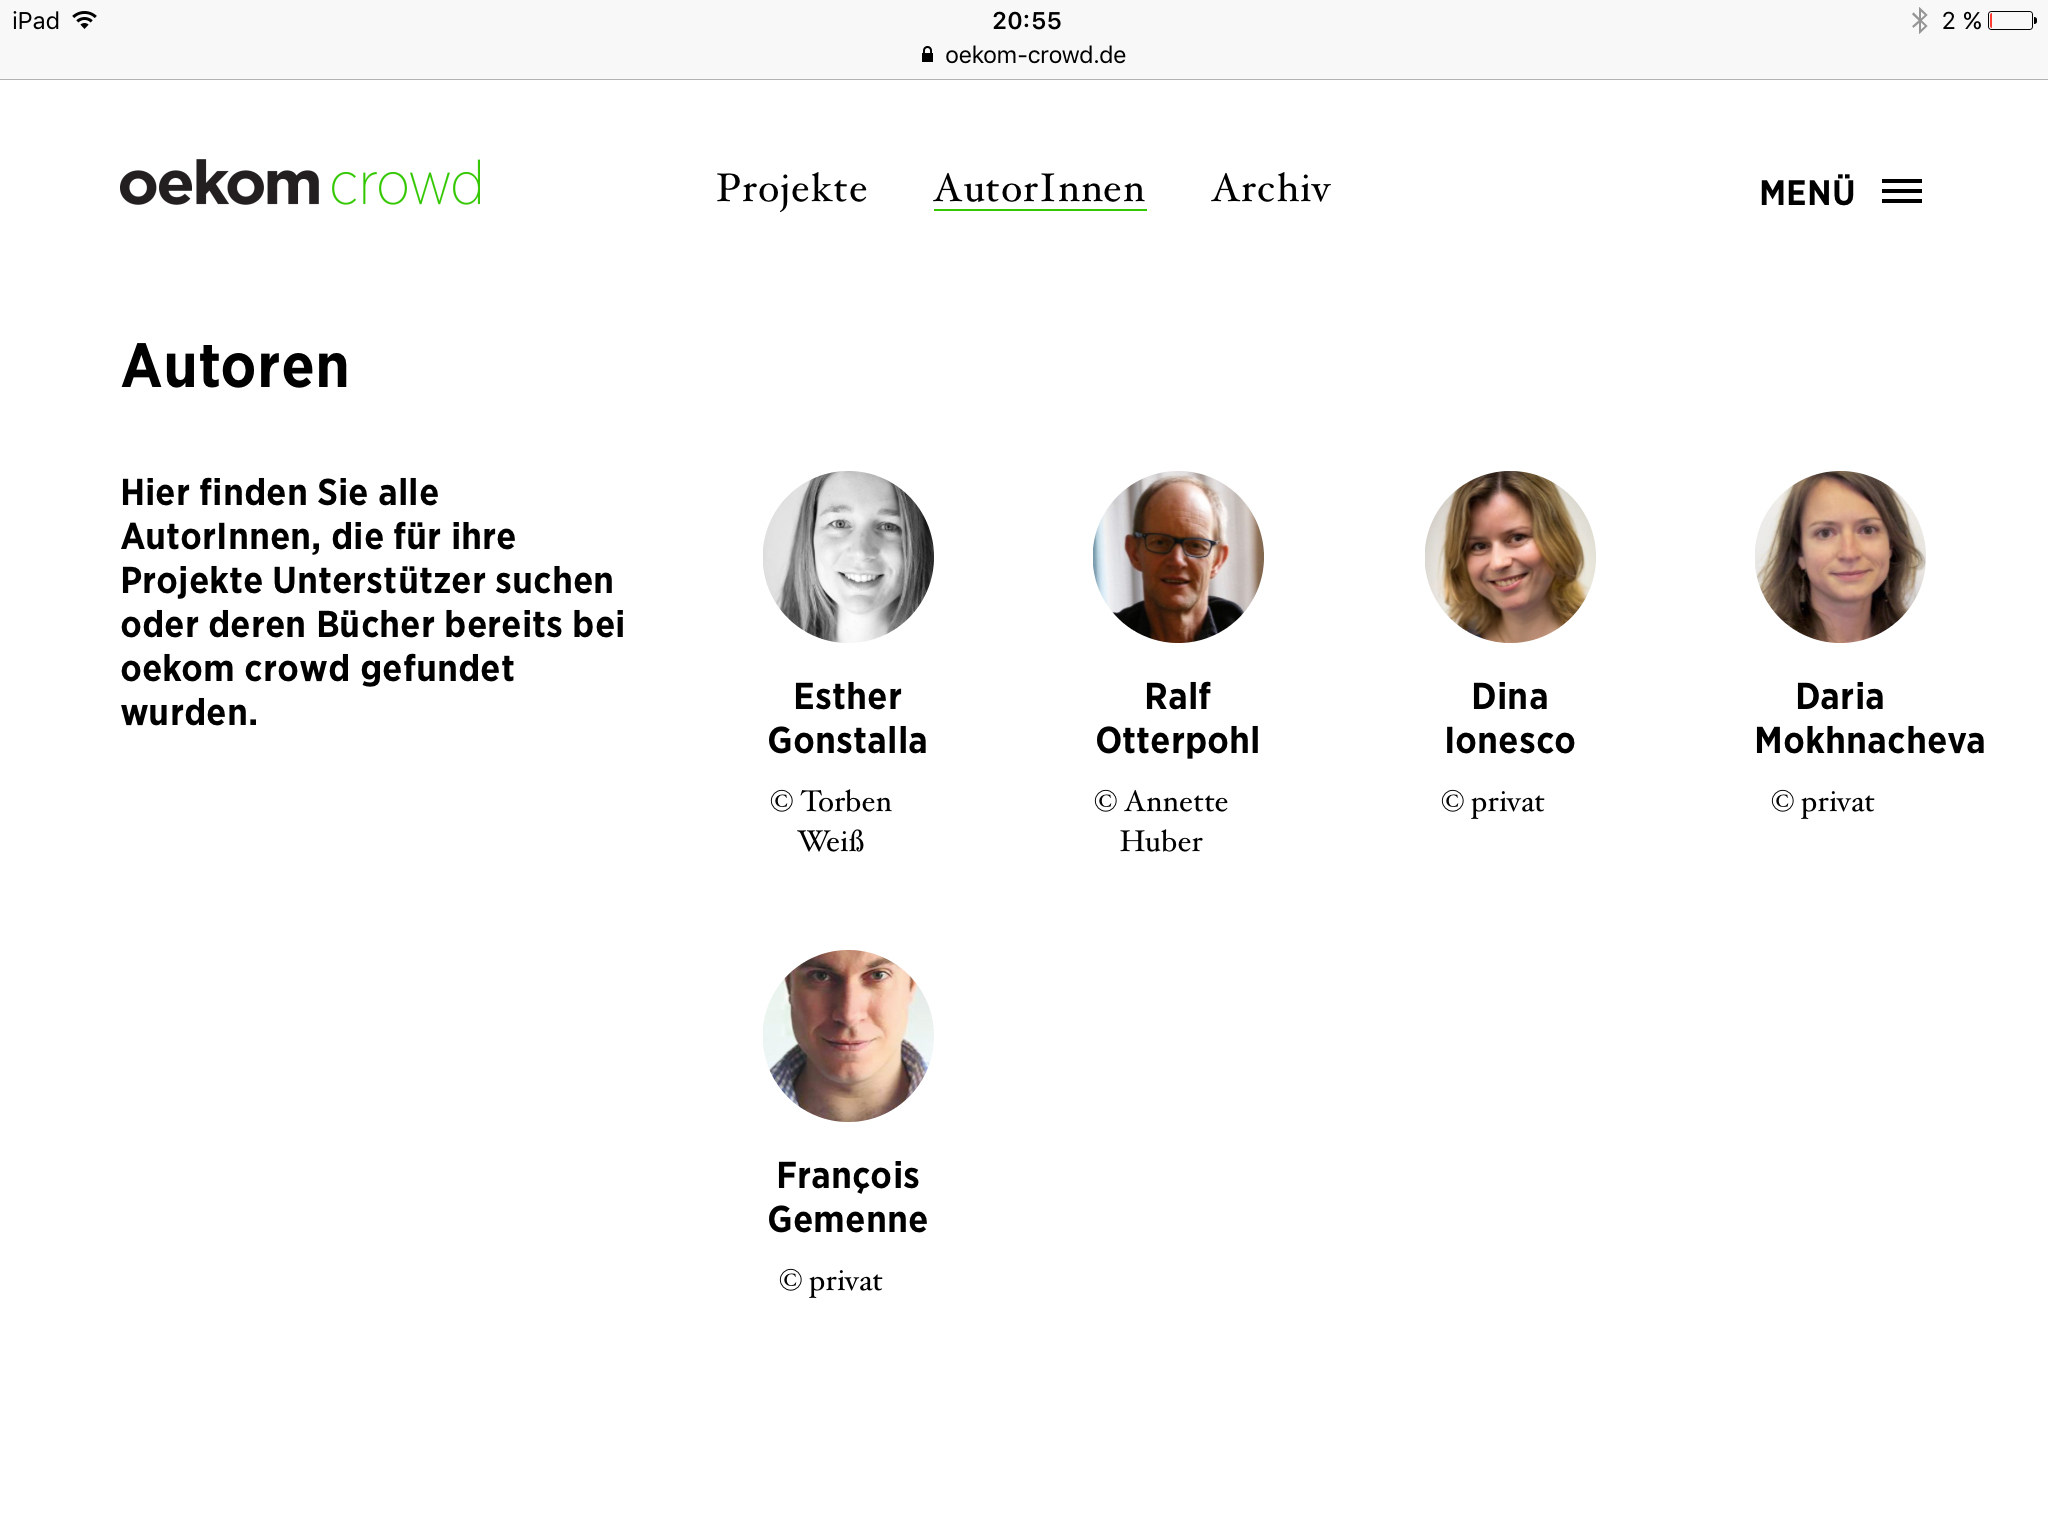 Screenshot der Website von Oekom Crowd in der I-Pad-Version